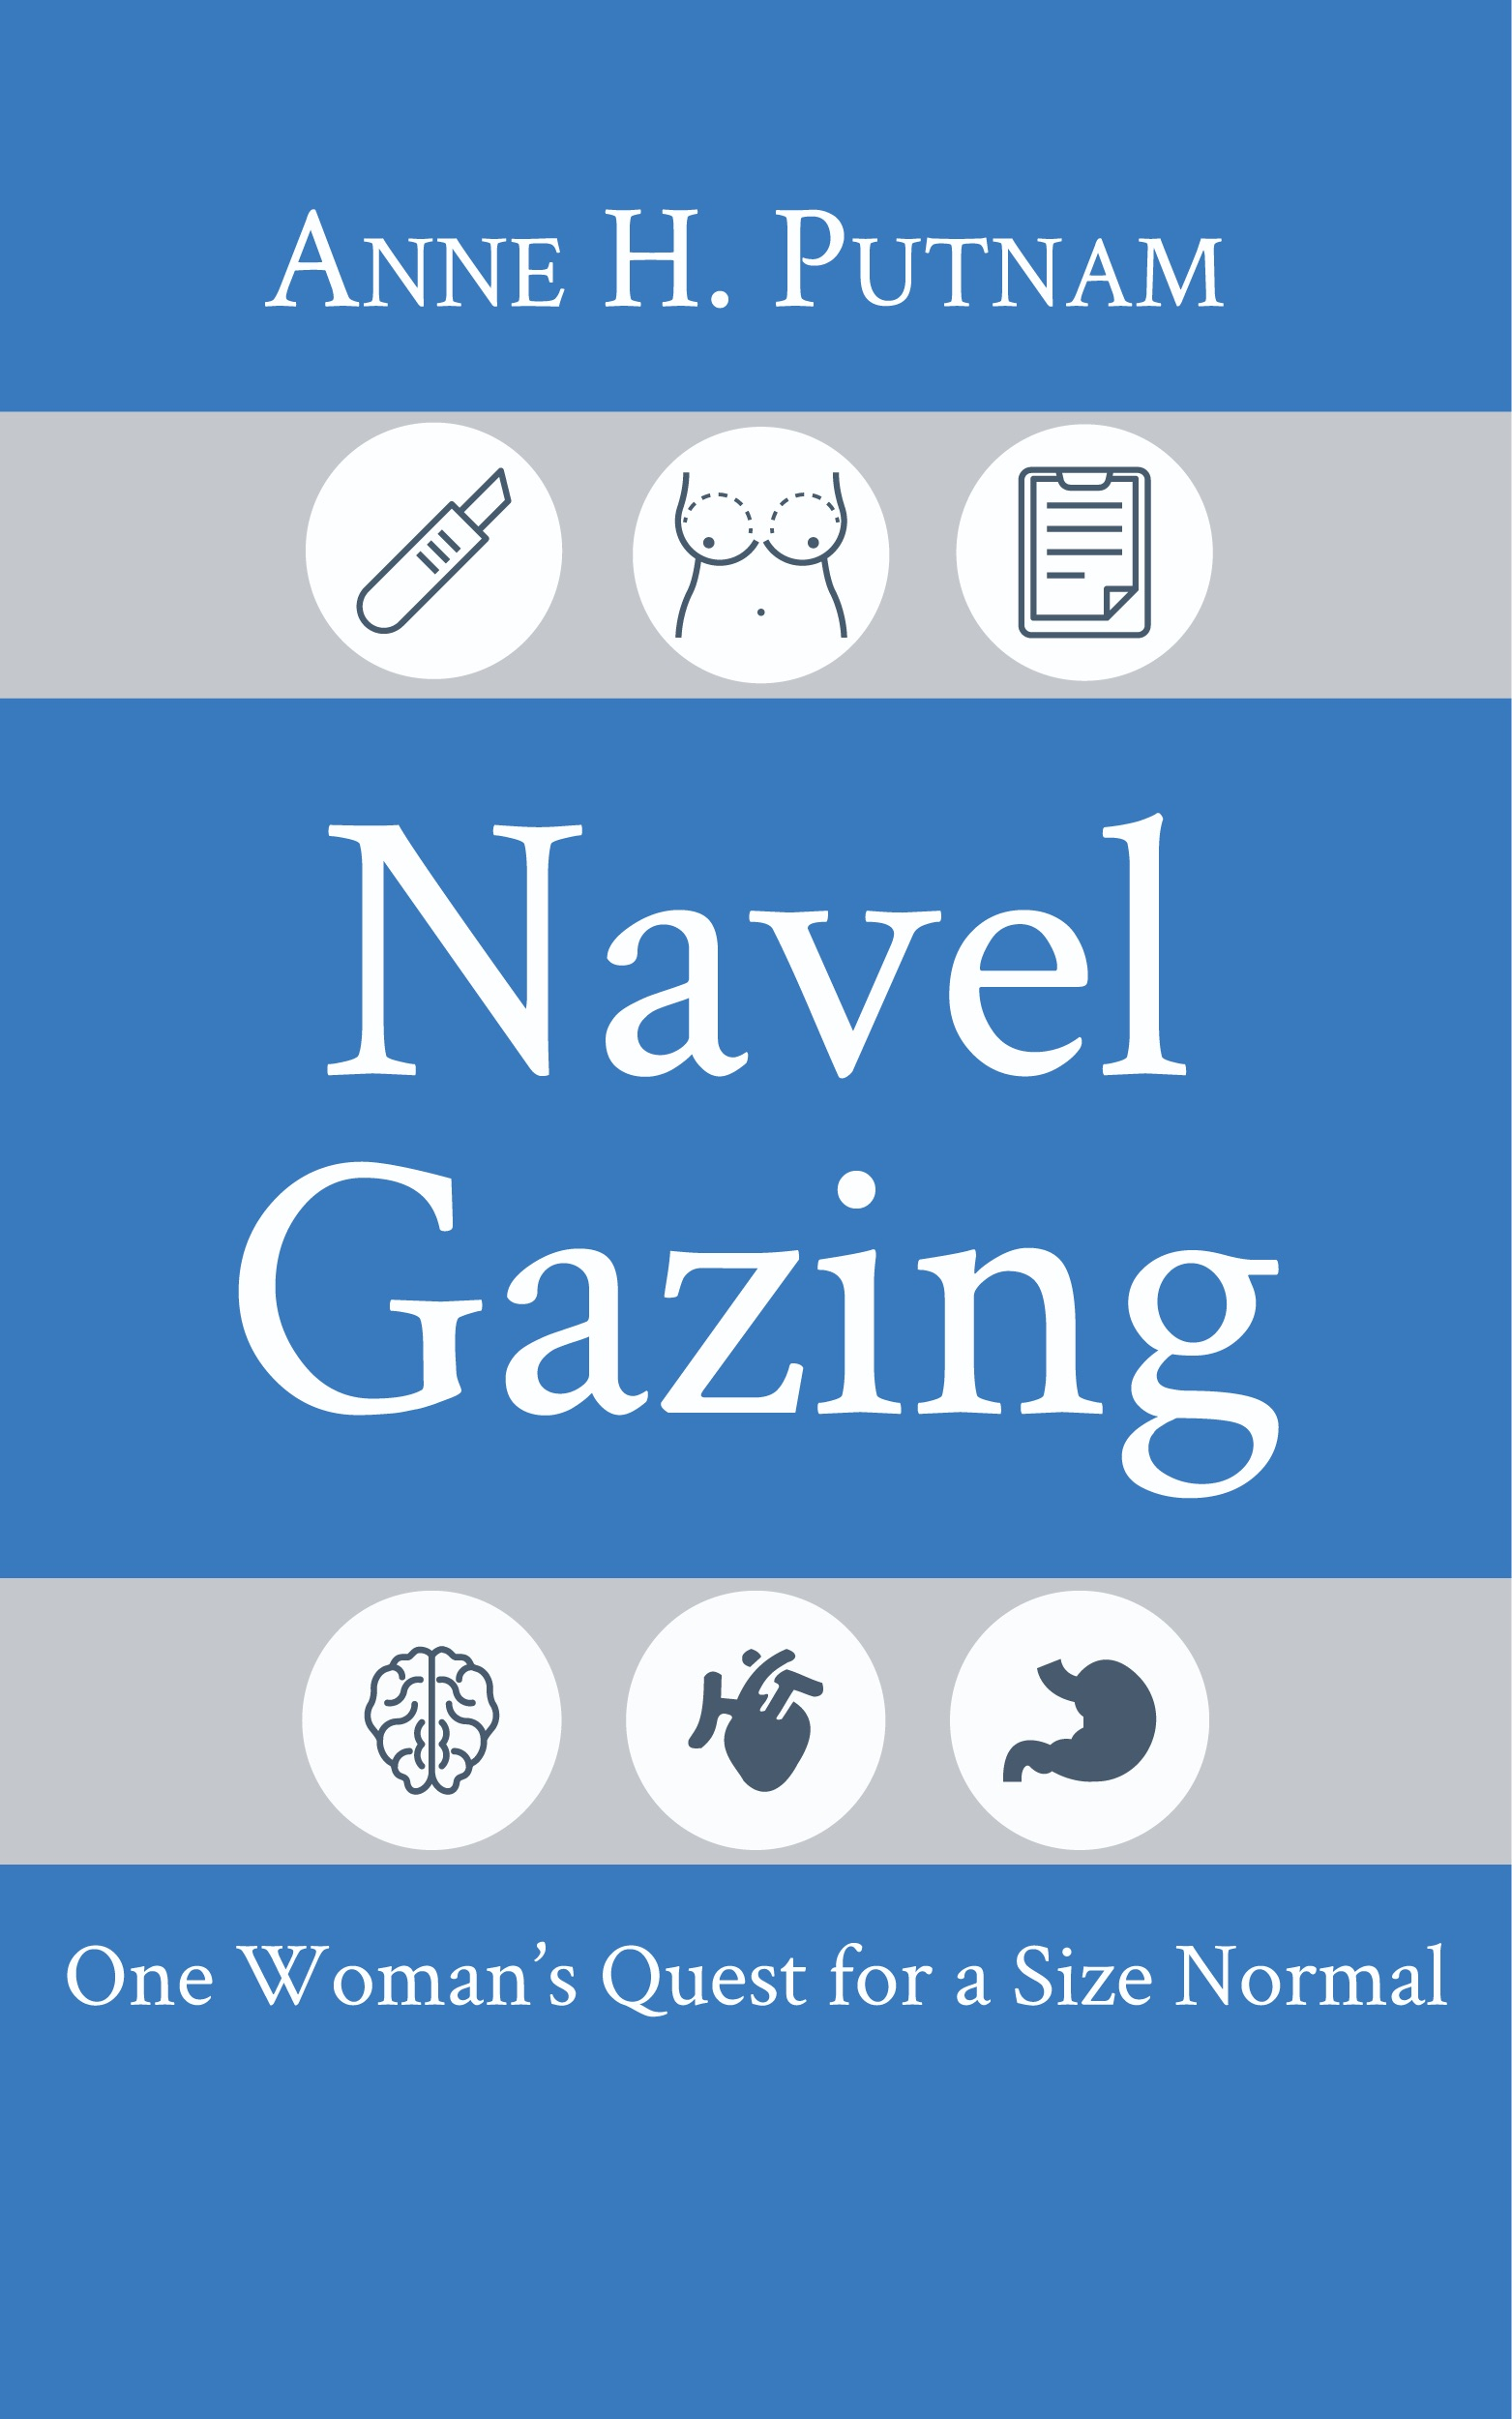 Navel Gazing Ebook Jacket